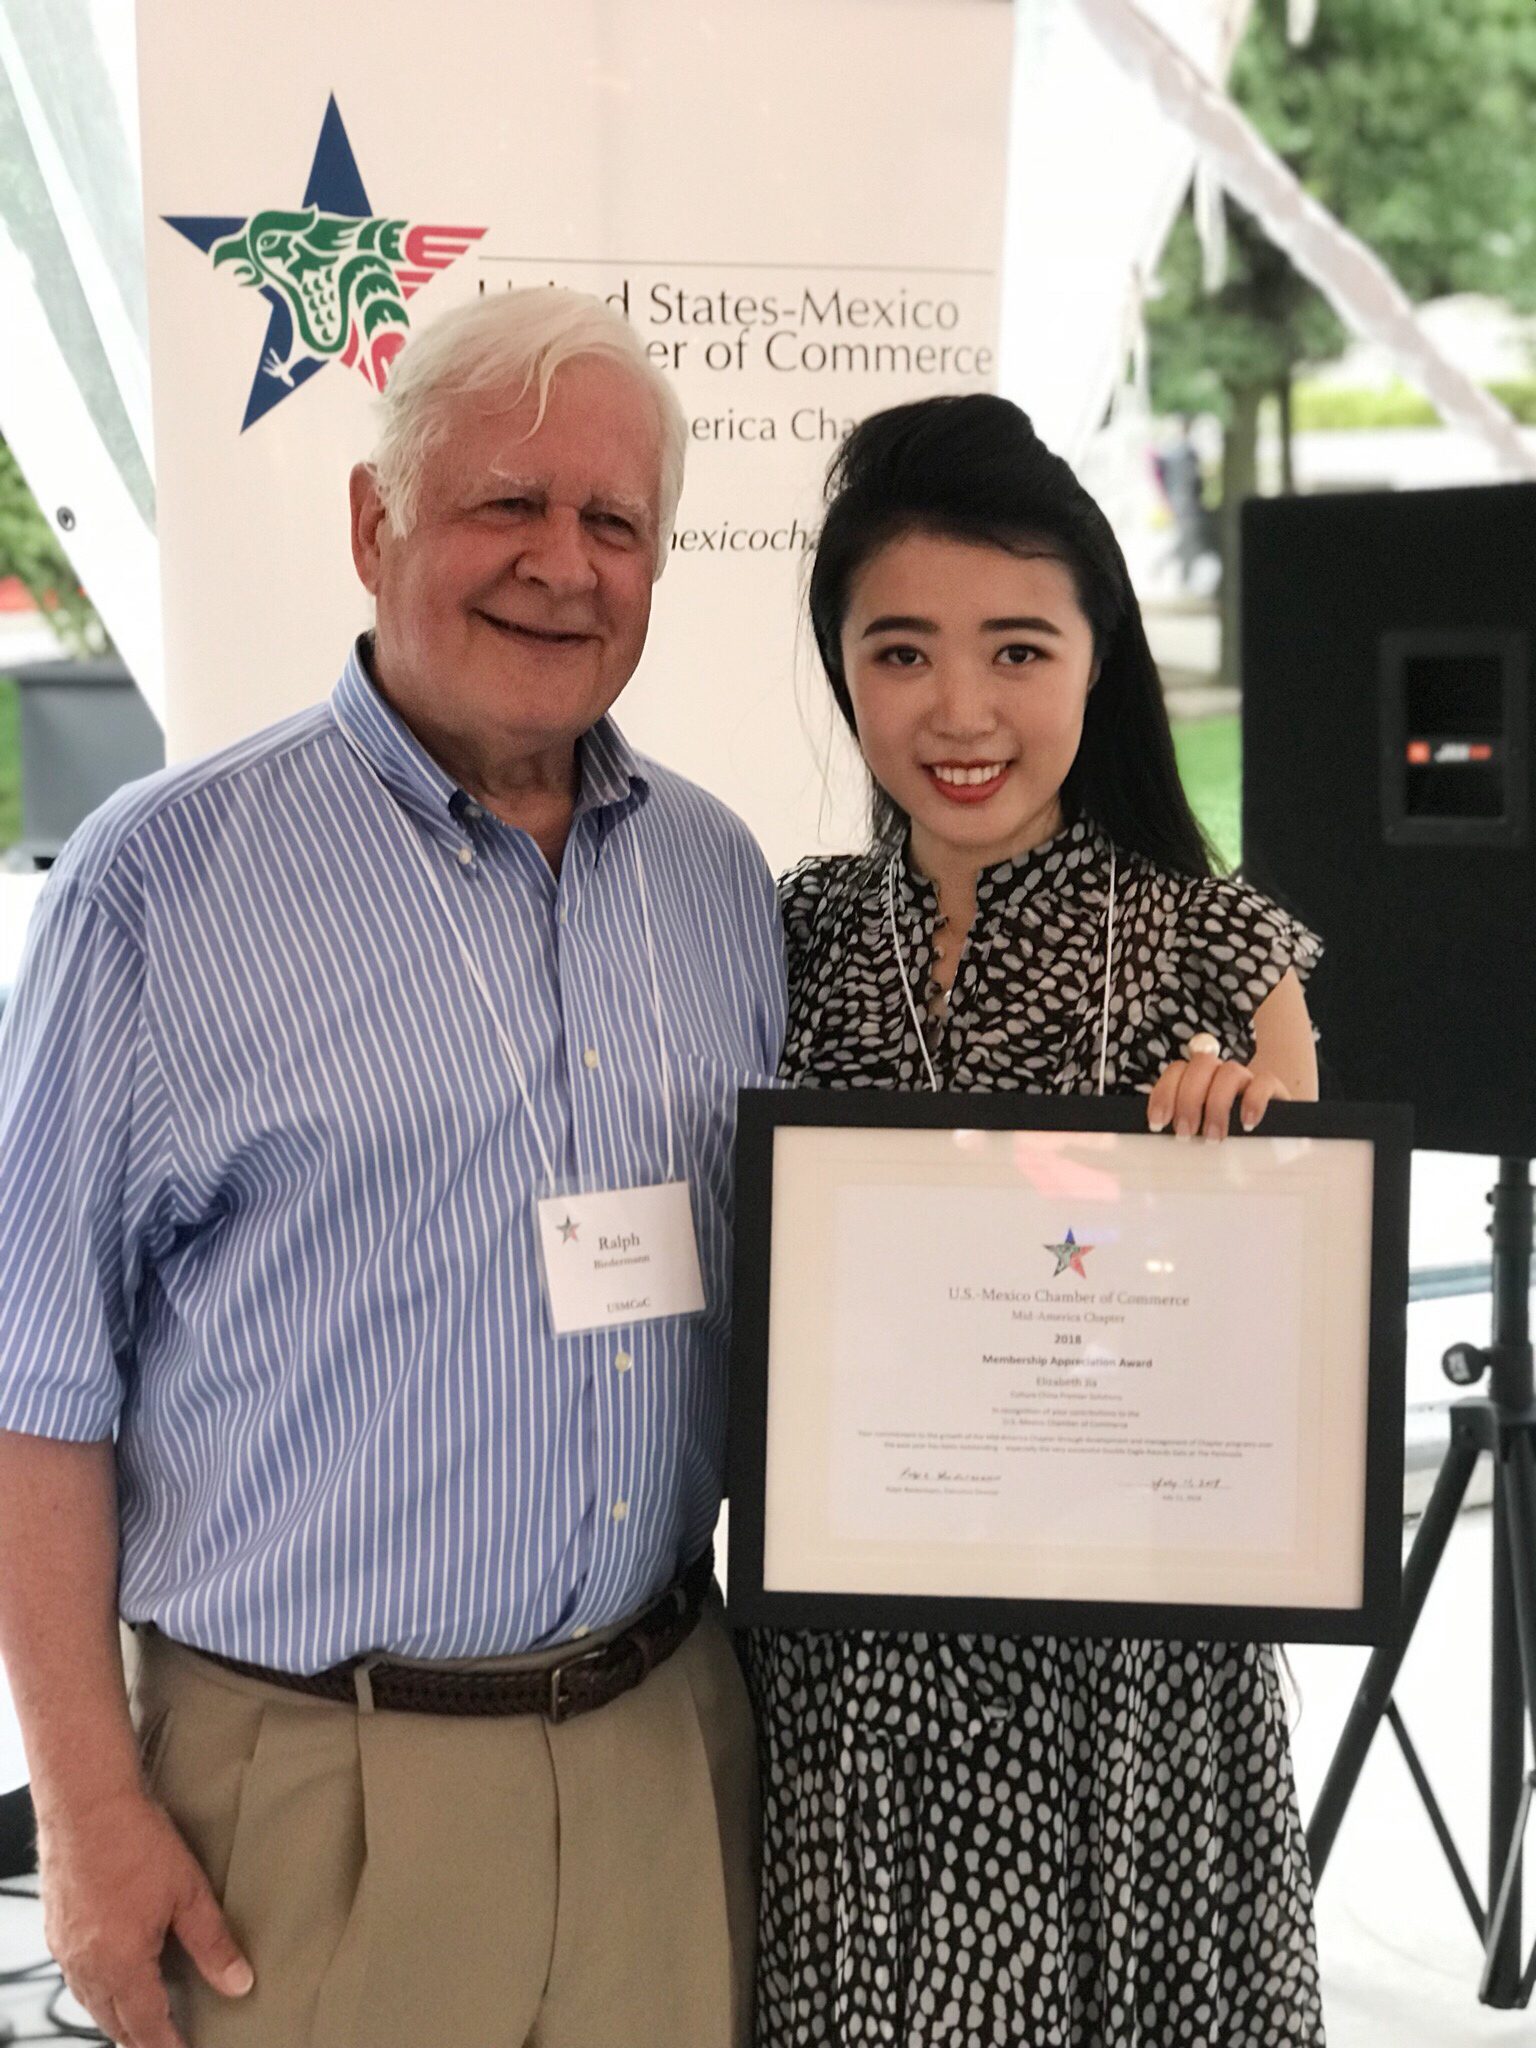 Executive Director Ralph Biedermann presenting a recognition award to Elizabeth Jia, who manages programs and development for the Chamber